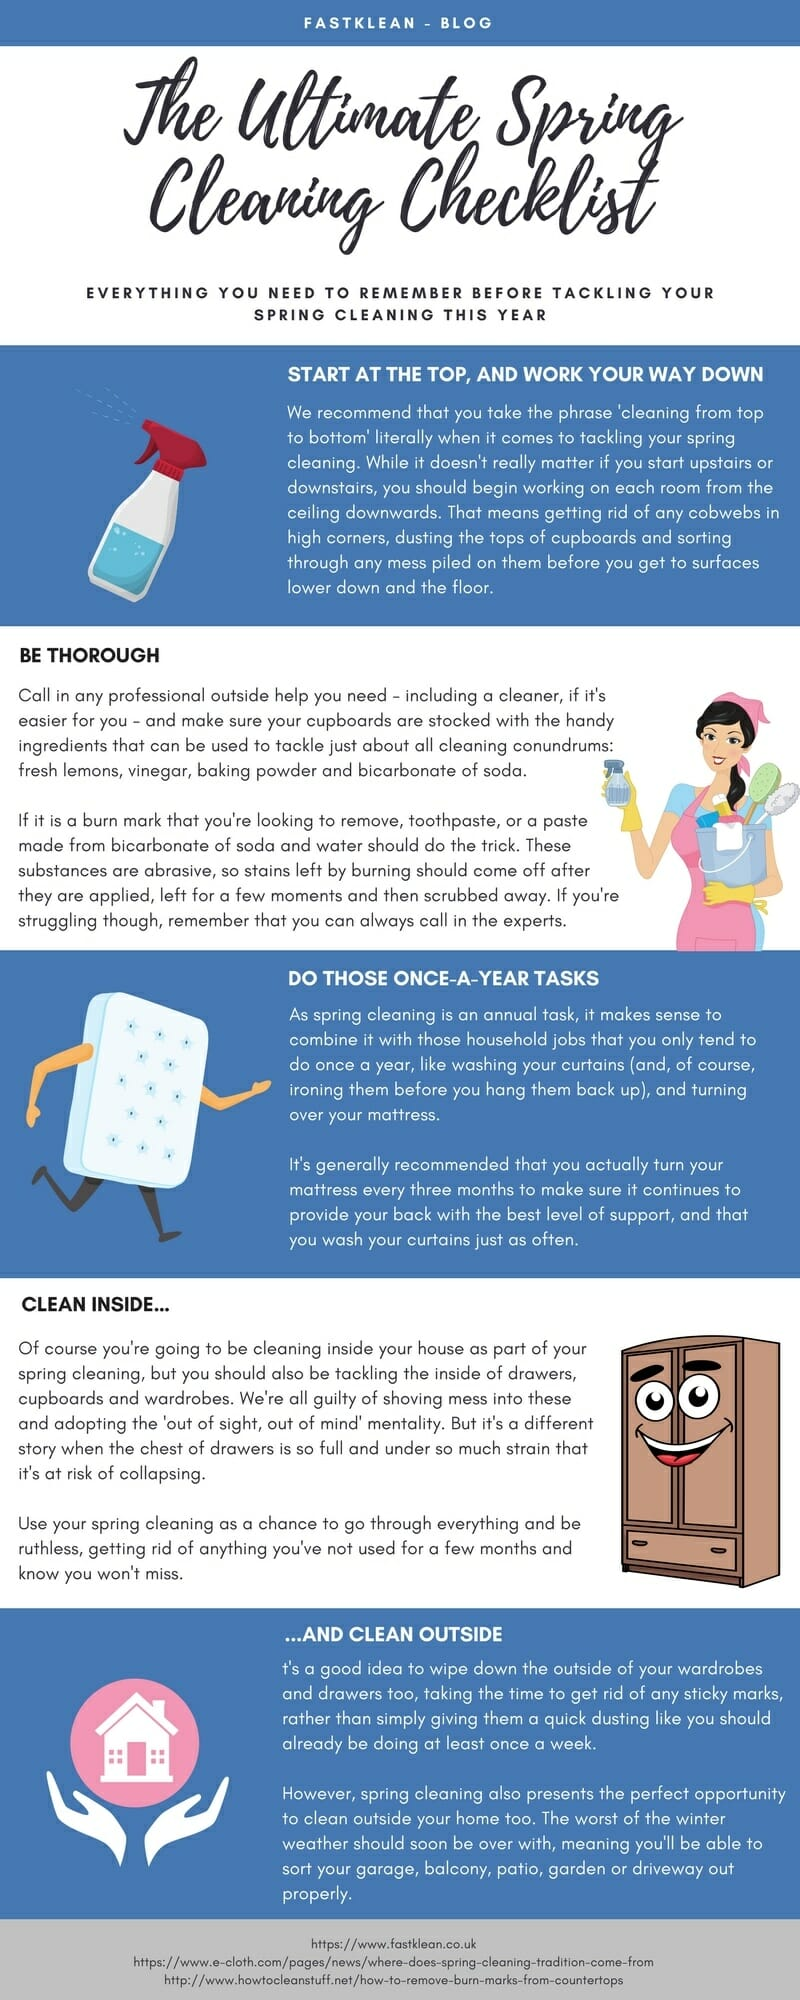 The Ultimate Spring Cleaning Checklist Infographic